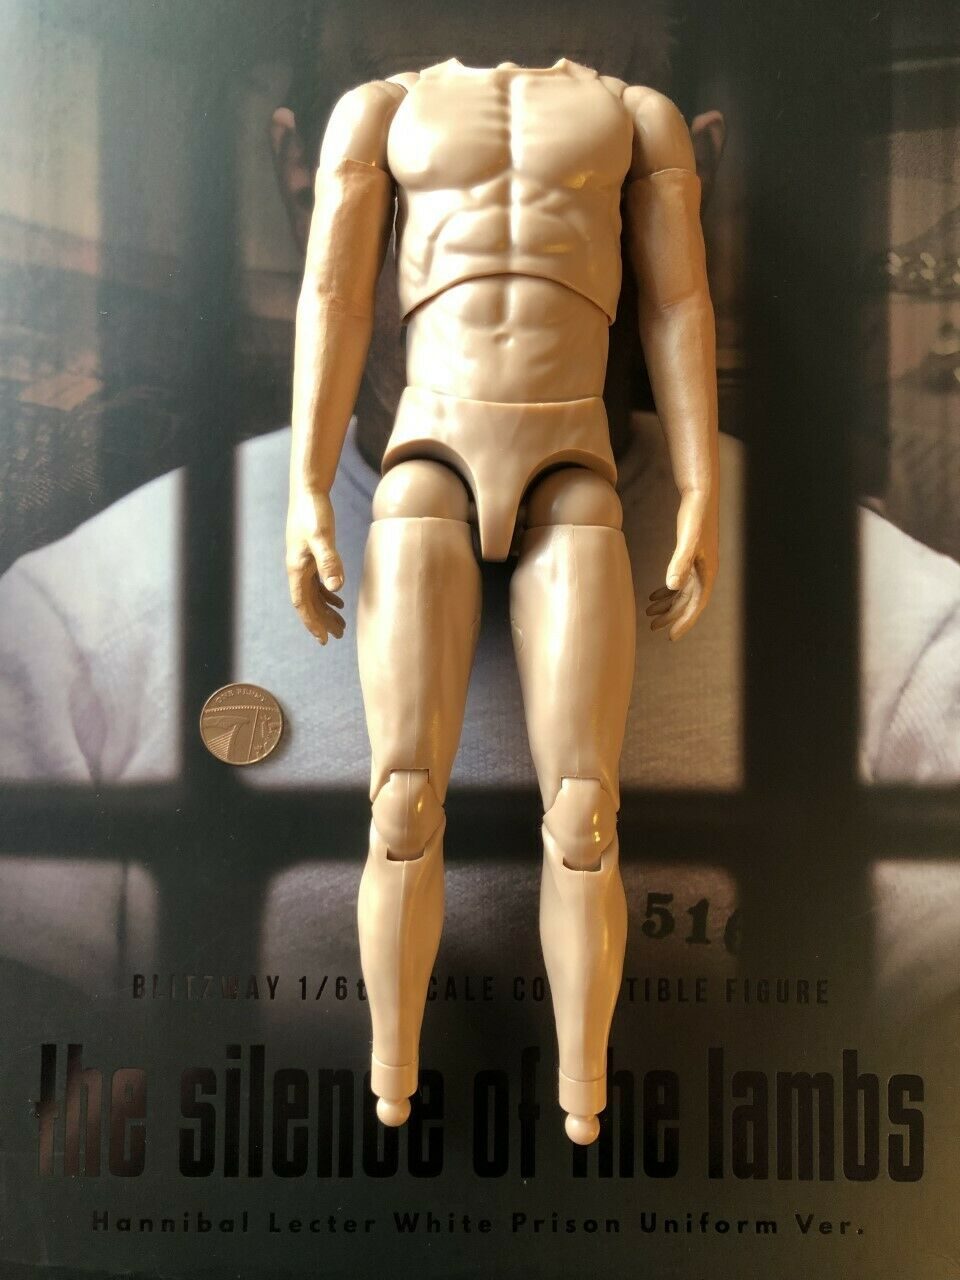 BLITZWAY Hannibal Lecter Weiß Prison Ver Nude Körper loose 1 6th scale